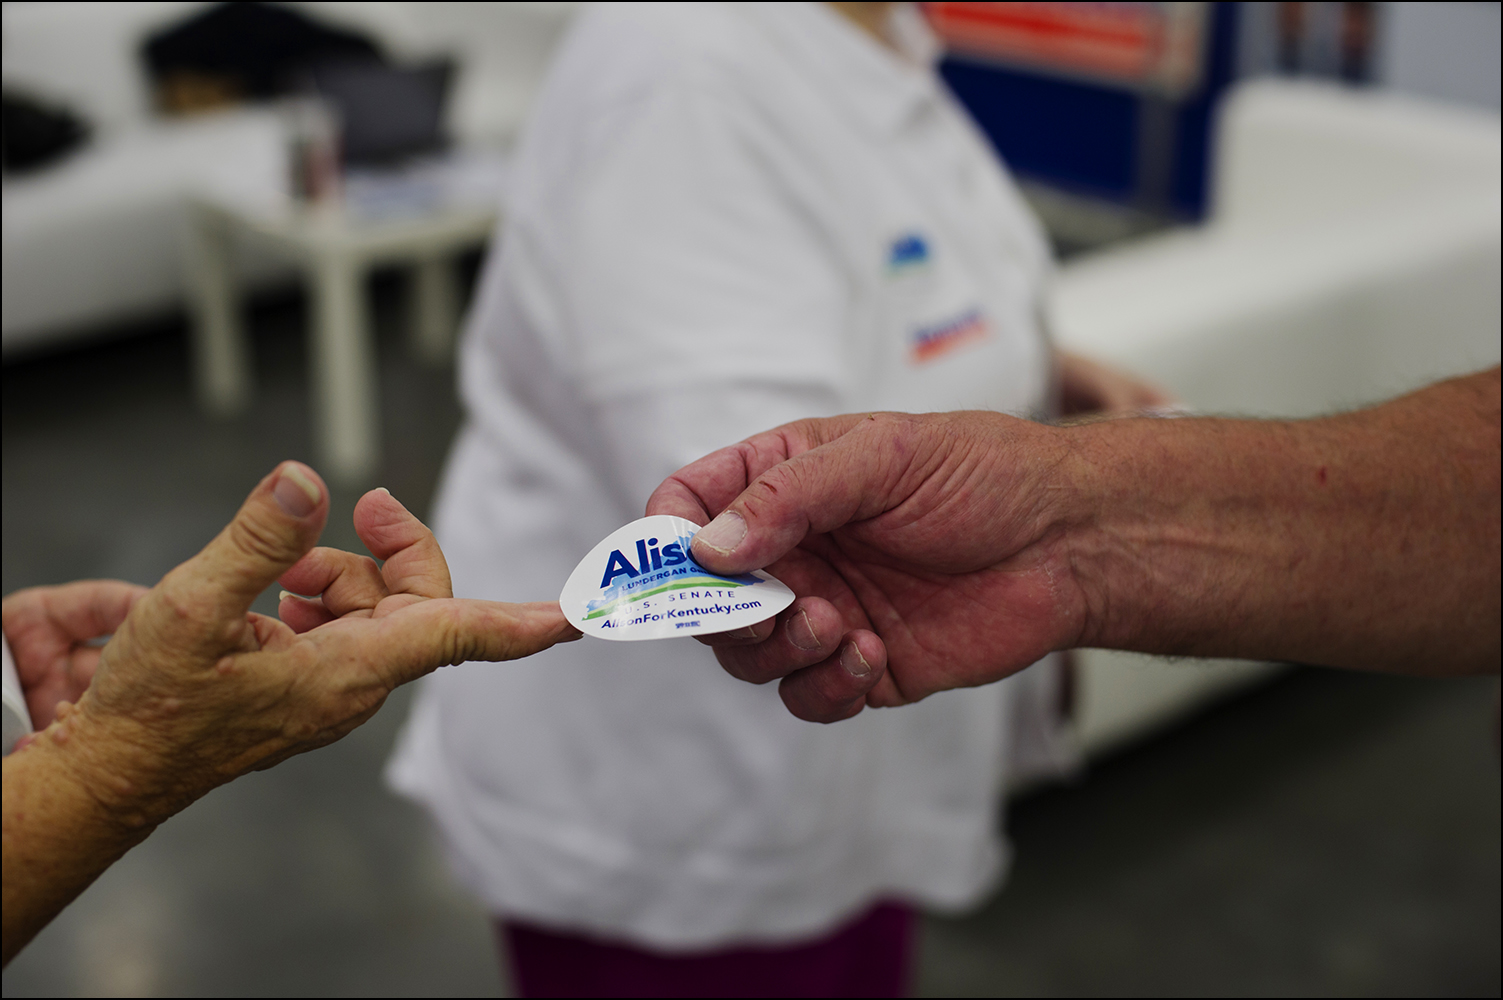 Supporters of U.S. Senate candidate Alison Lundergan Grimes pick up stickers at the Democrats booth inside the the Kentucky State Fair in Louisville, KY on Thursday, August 21, 2014. Photos by Brian Powers